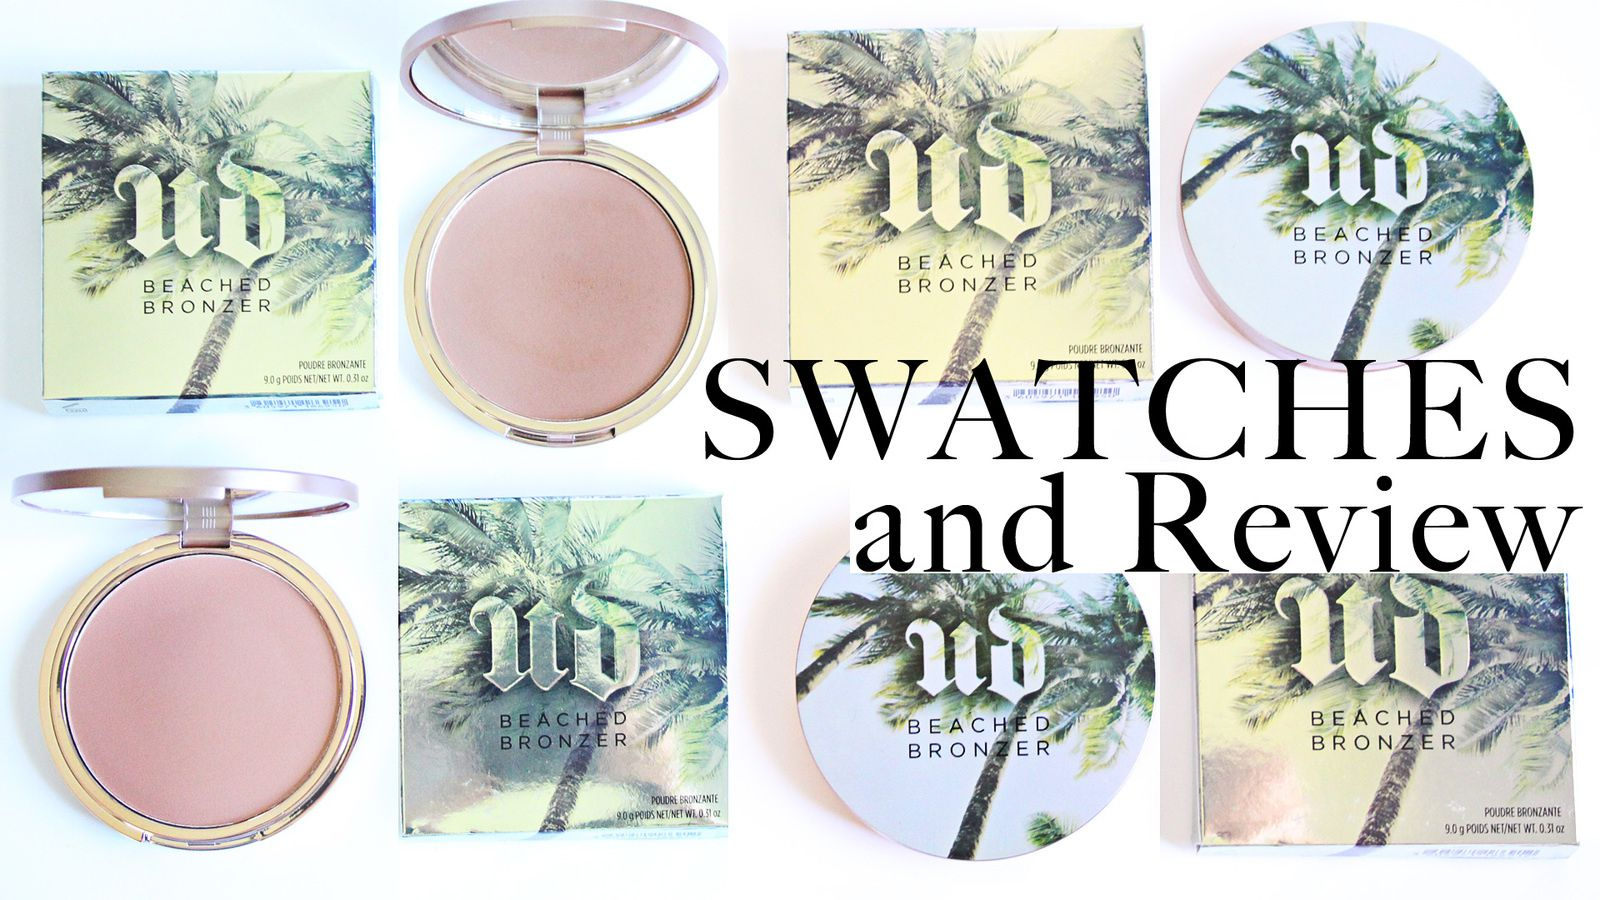 NEW Beached Bronzer x Urban Decay REVIEW &amp&#x3B; SWATCHES